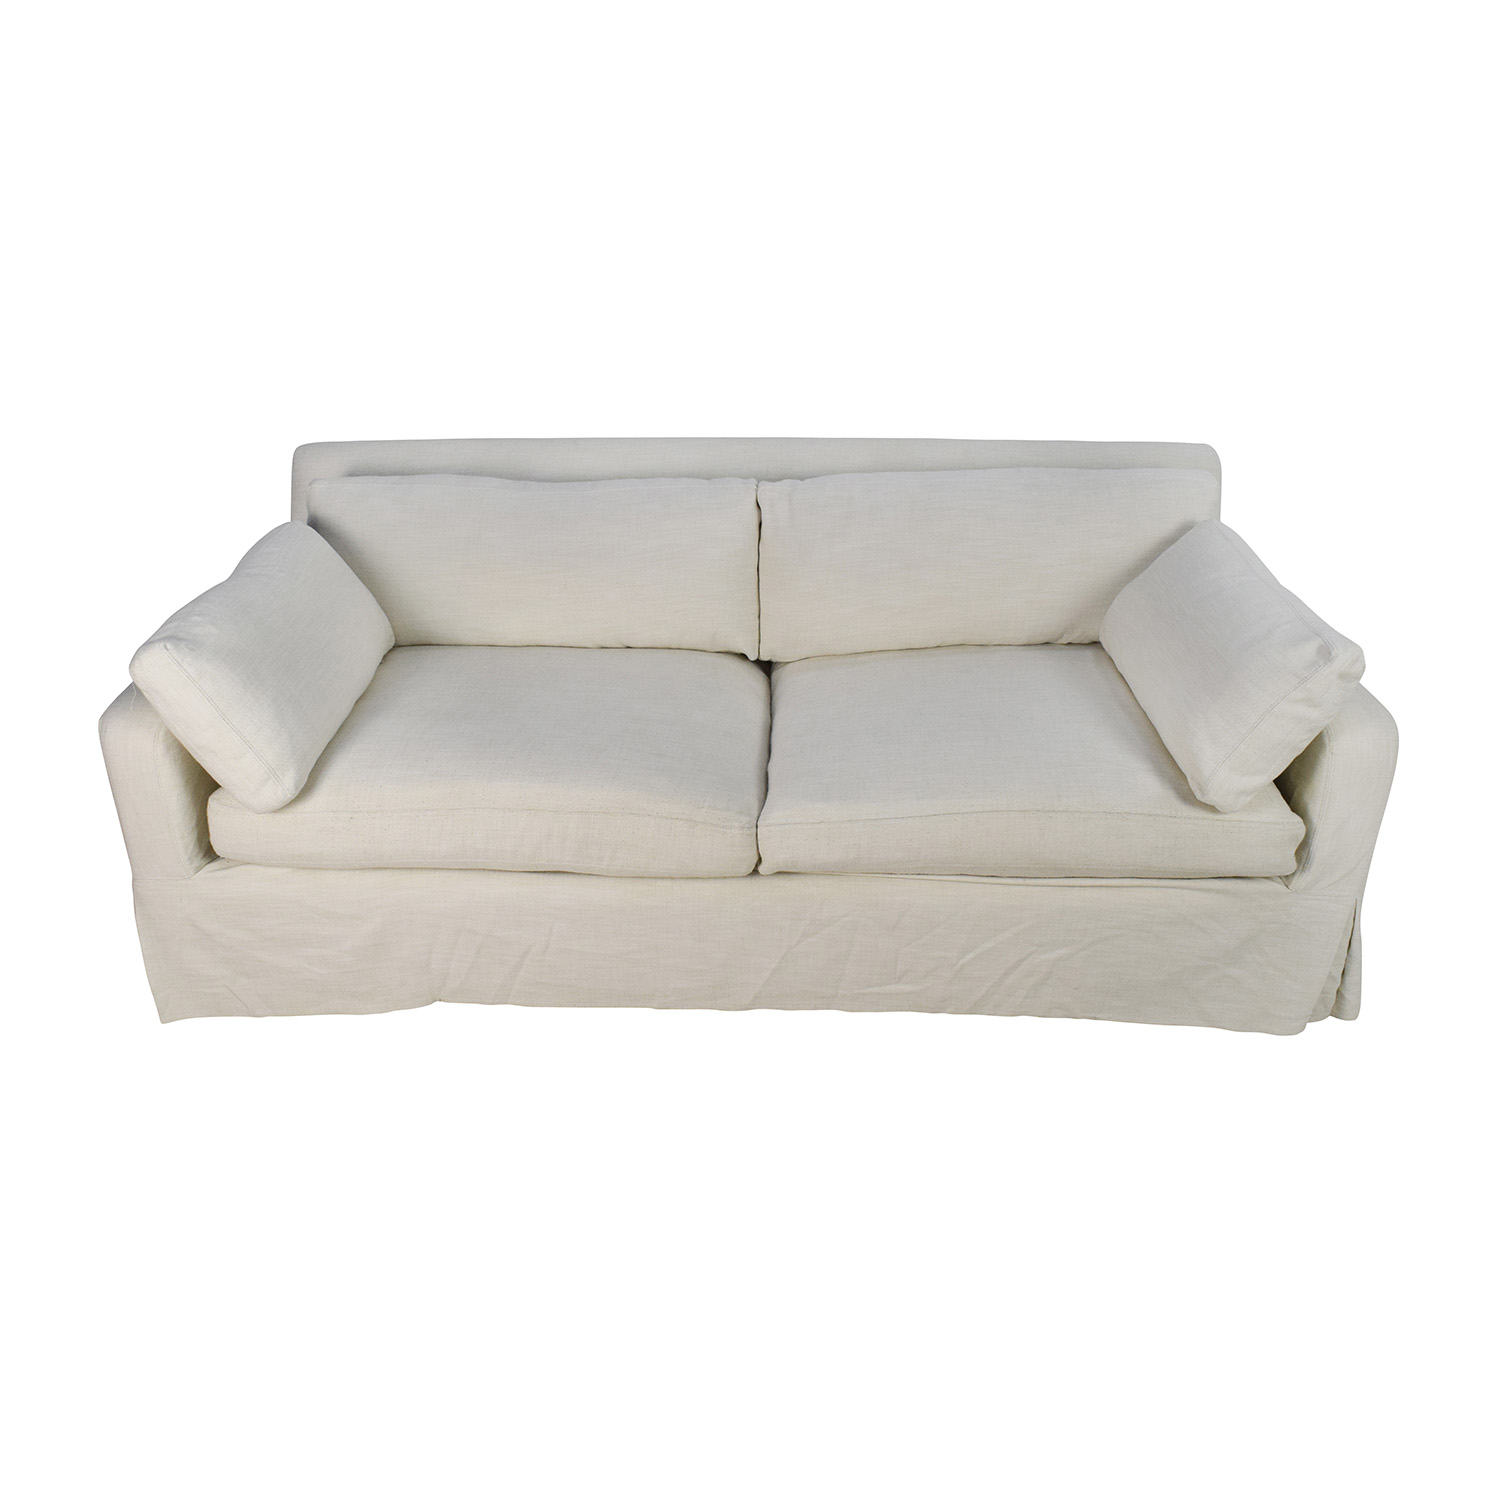 buy Restoration Hardware Belgian Track Arm Slipcovered Sofa Restoration Hardware Sofas